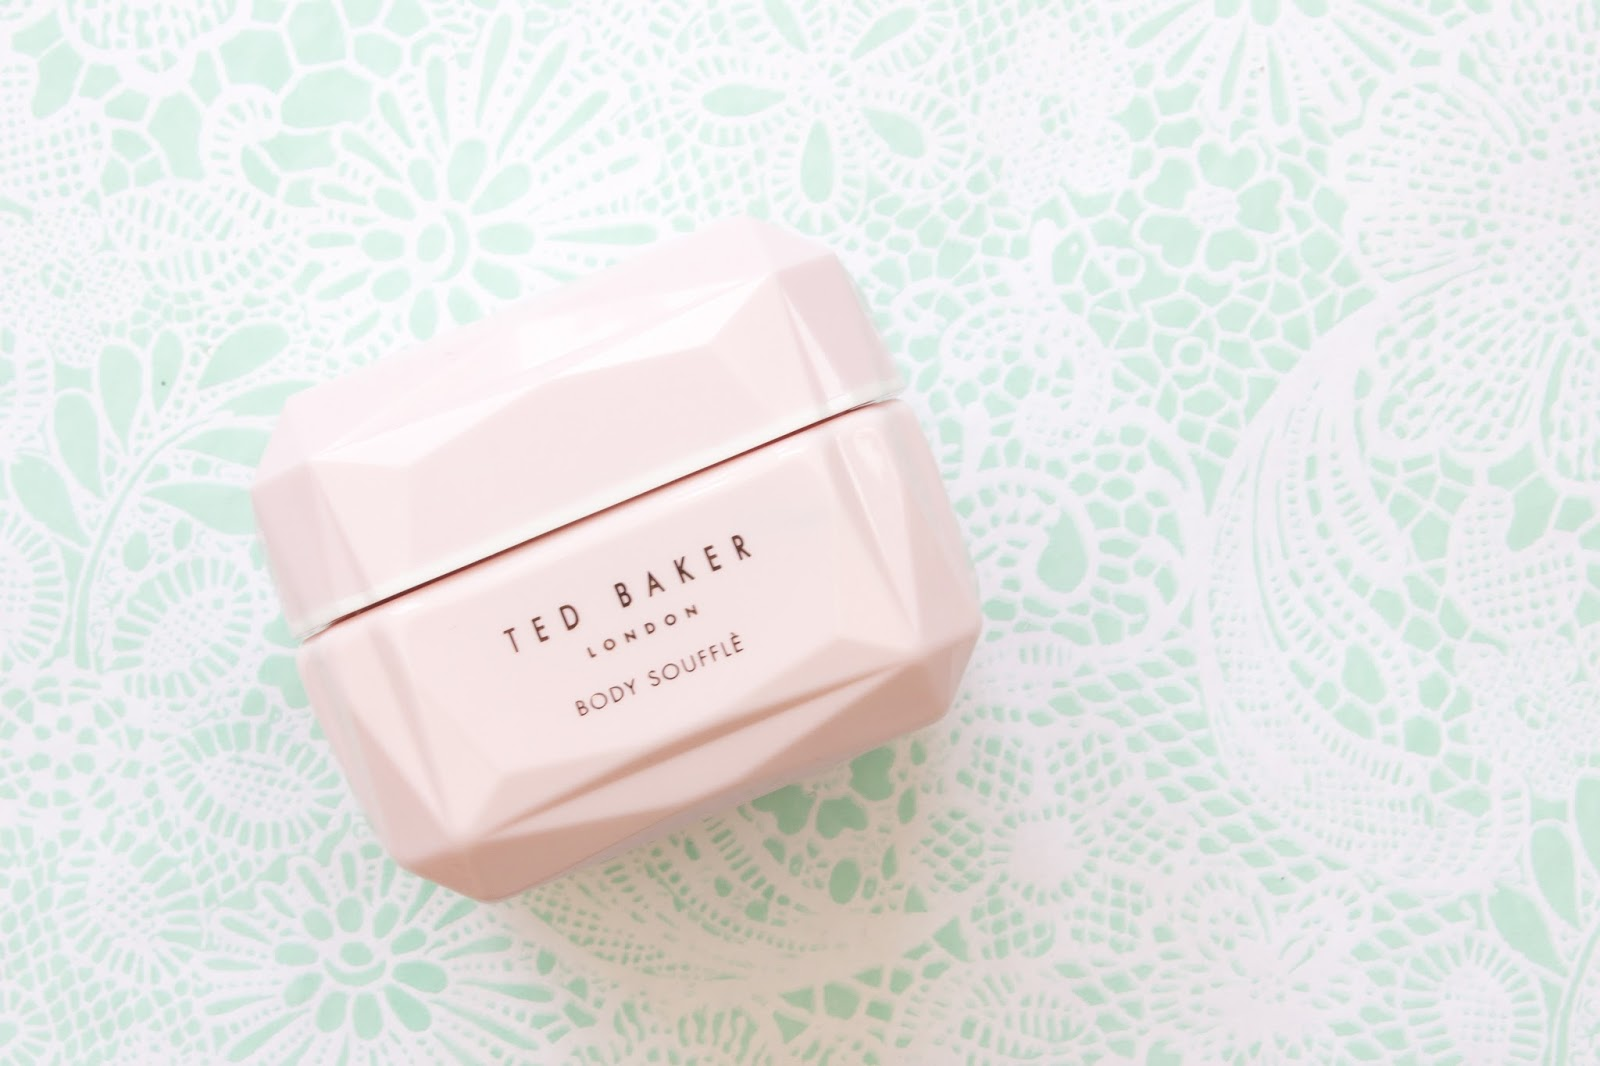 Ted Baker Body Souffle